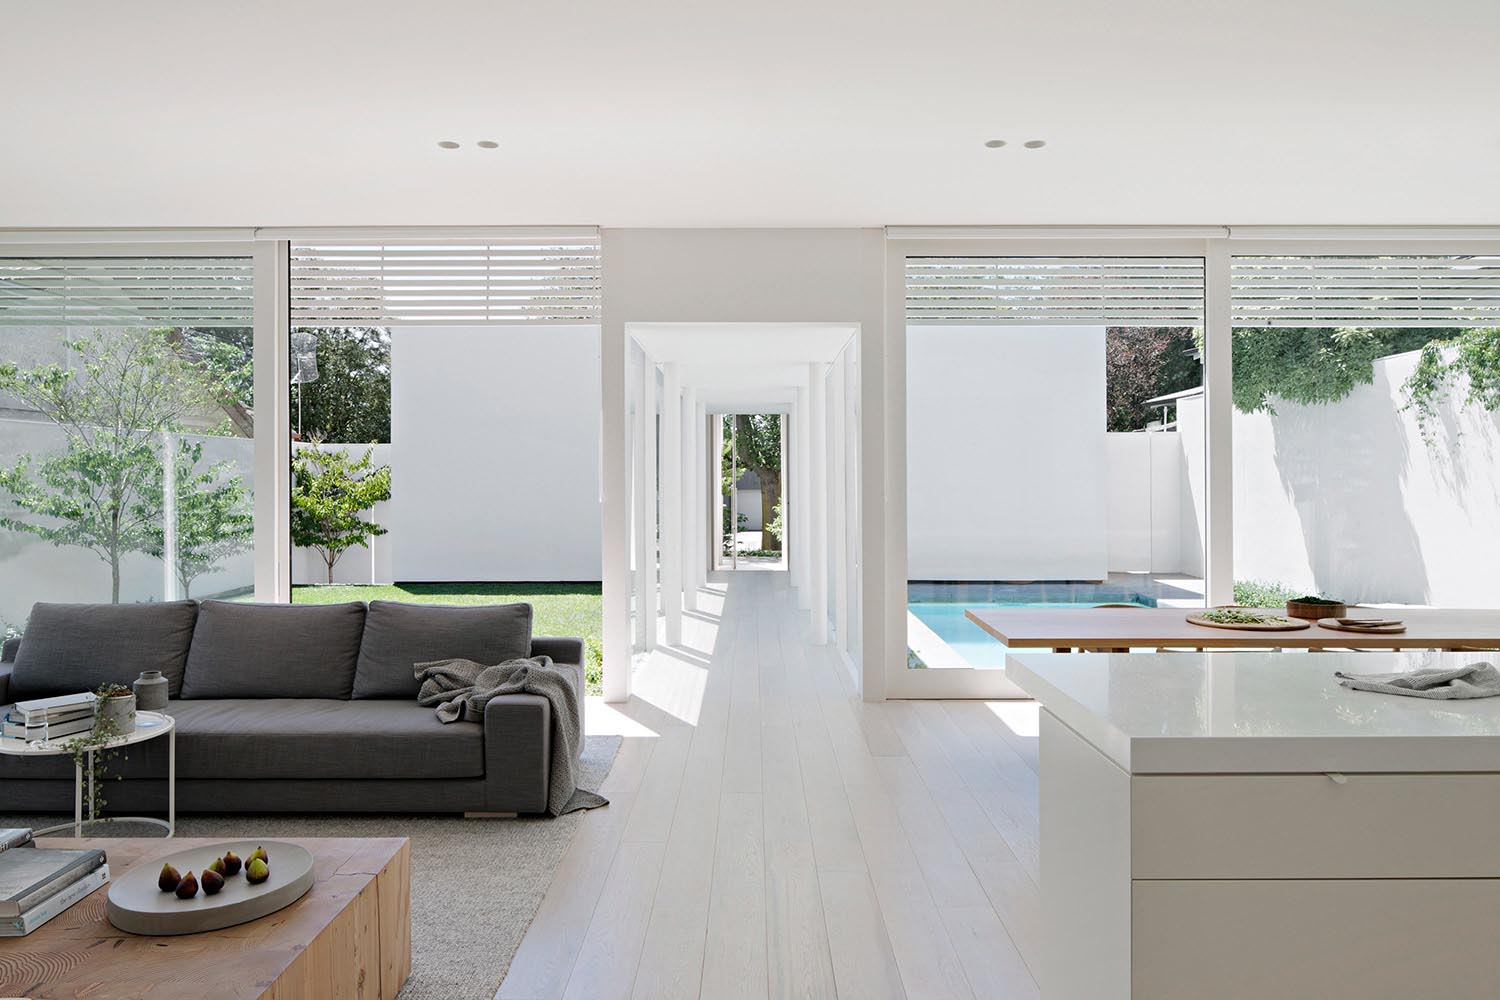 A modern open plan interior with large windows, light floors, and white walls.